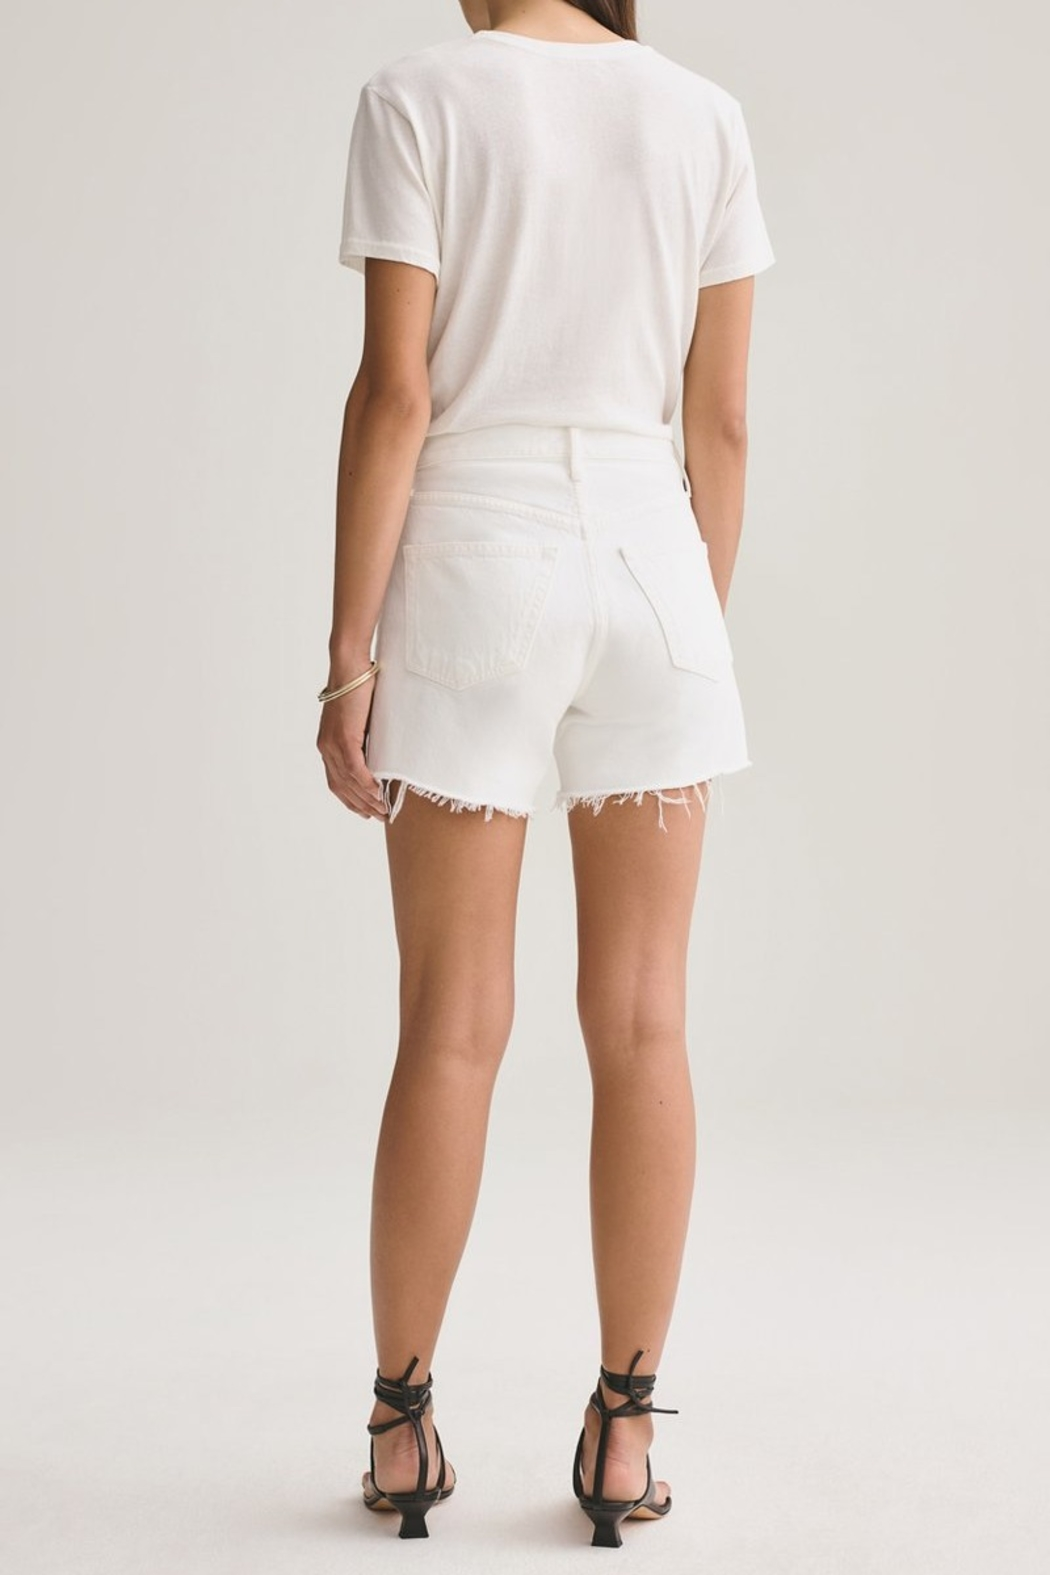 AGOLDE Parker Vintage Cut Off Short In Tissue - Side Cropped Image